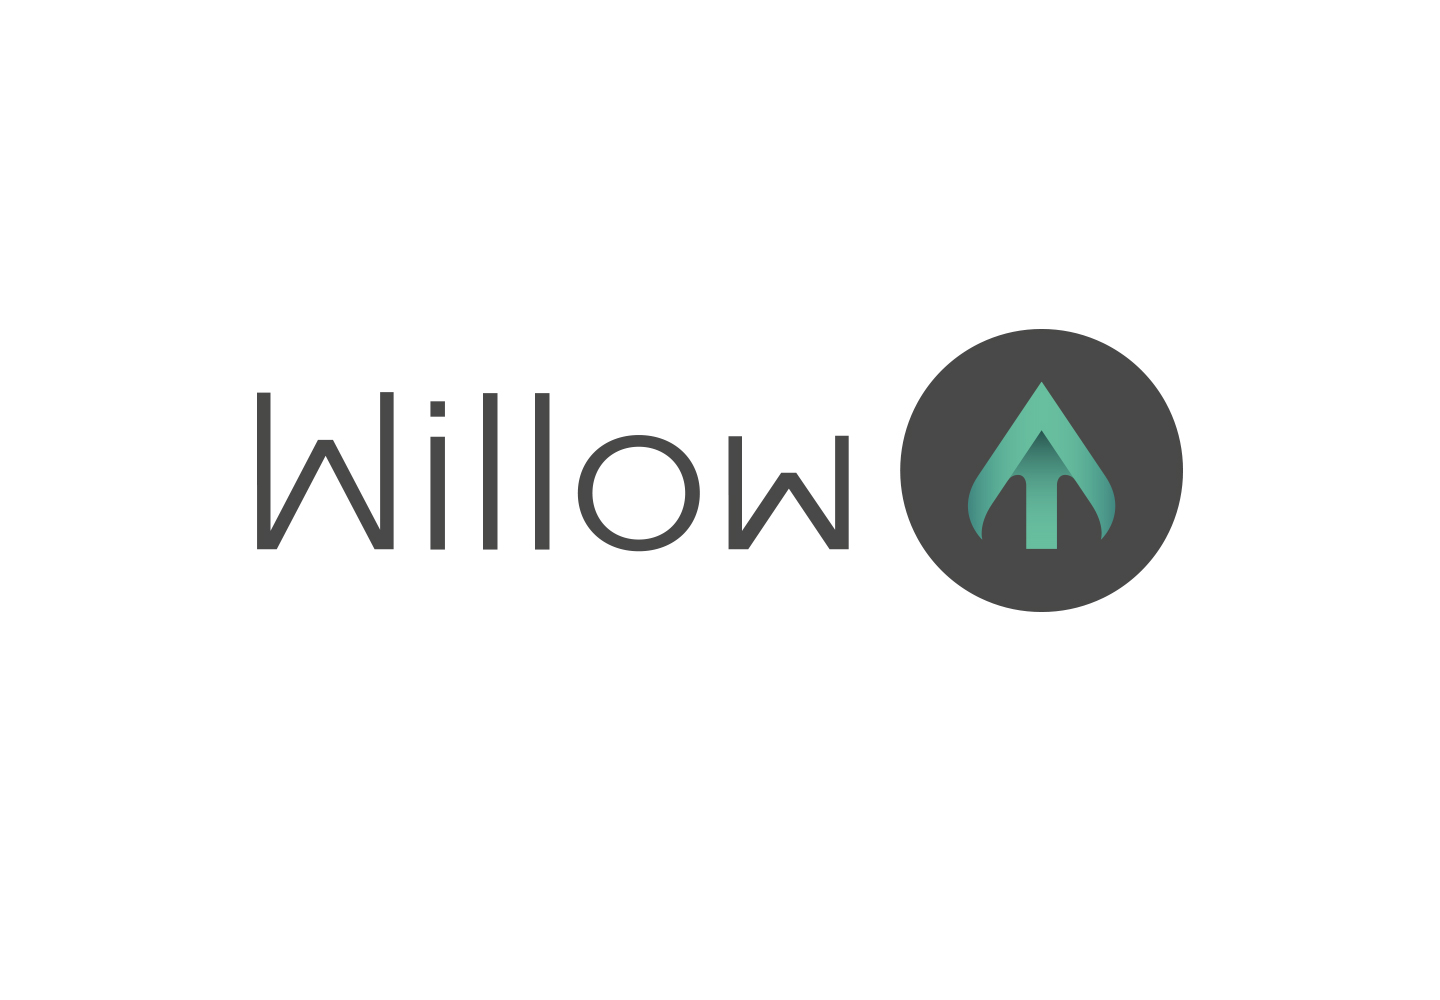 http://rusyndesign.co.uk/wp-content/uploads/2021/02/Branding-Willow.png